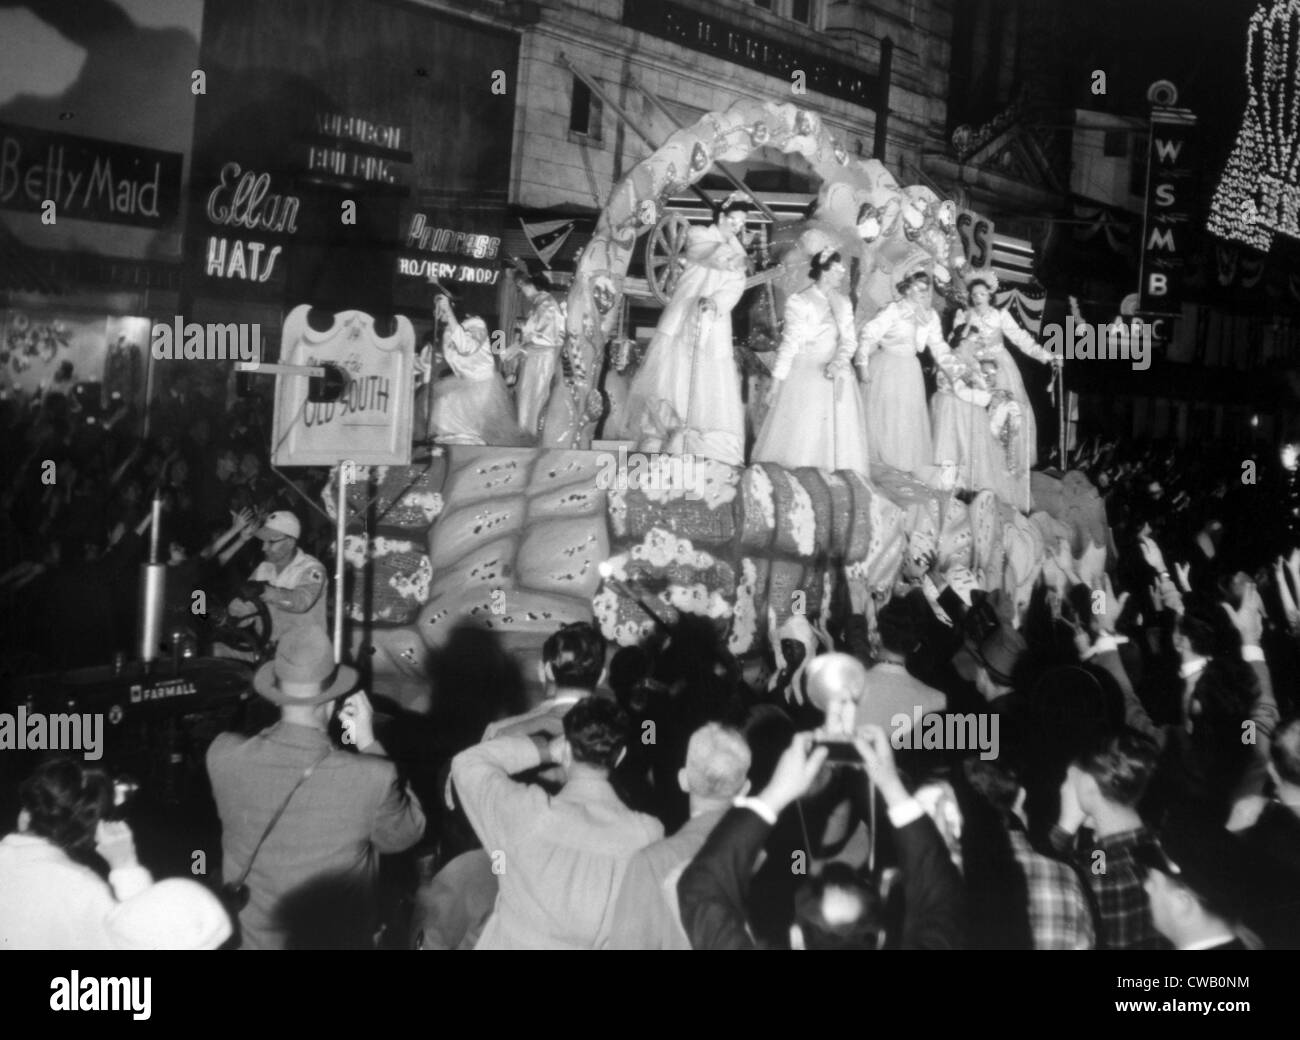 LOUISIANA TERRITORY, Mardi Gras in New Orleans, 1953 - Stock Image